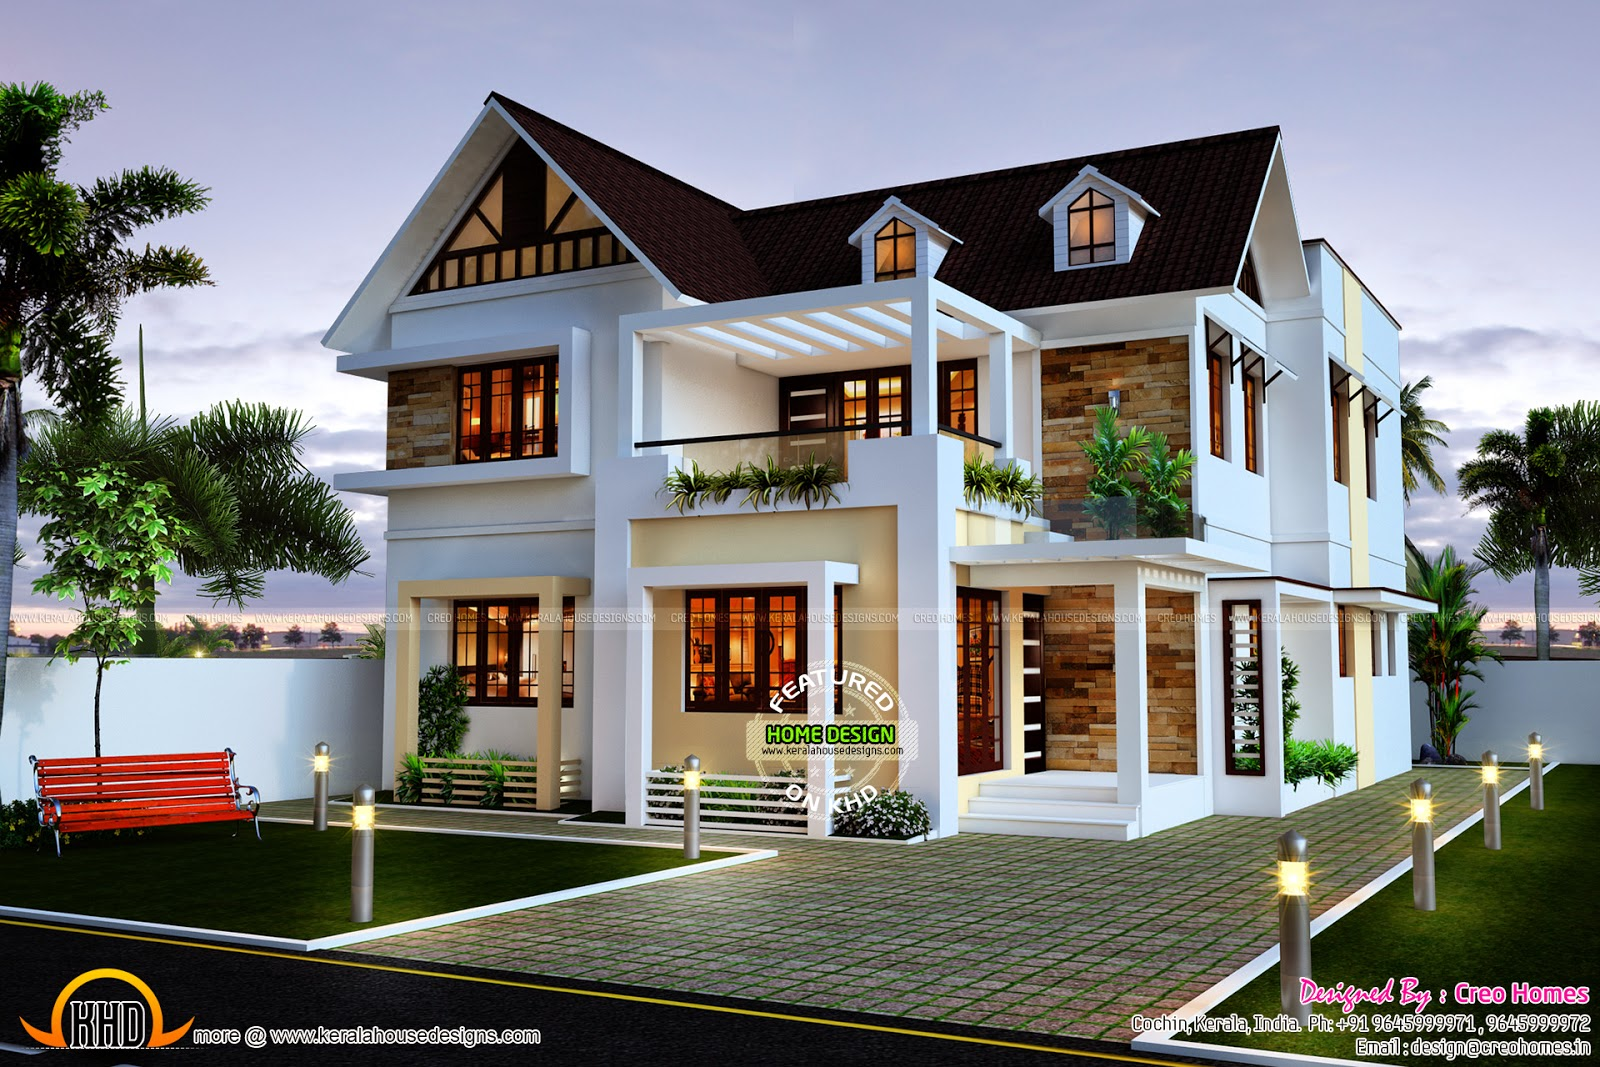 Very beautiful 4 bedroom home kerala home design and floor plans - Beautiful design of a house ...